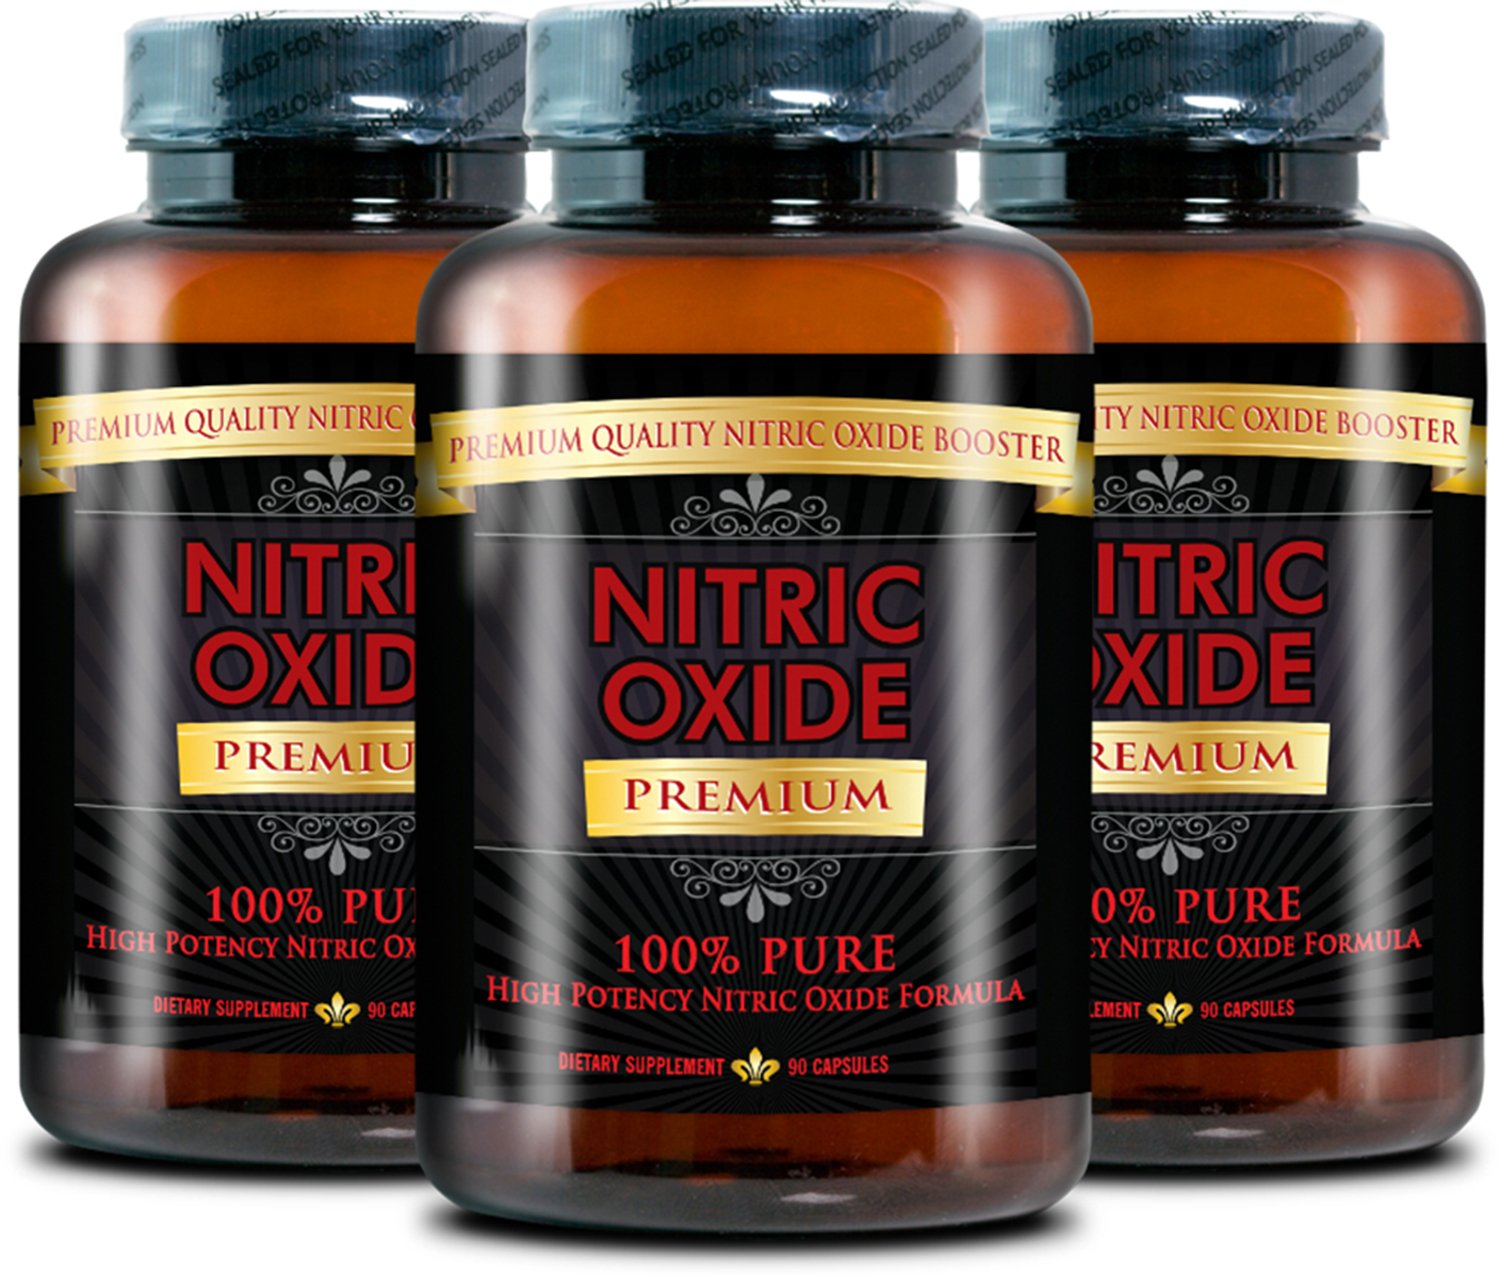 NITRIC OXIDE PREMIUM -#1 Nitric Oxide Supplement on market - with L-Arginine (AAKG) and L-Citrulline - 100% Money Back Guarantee - 3 Month Supply